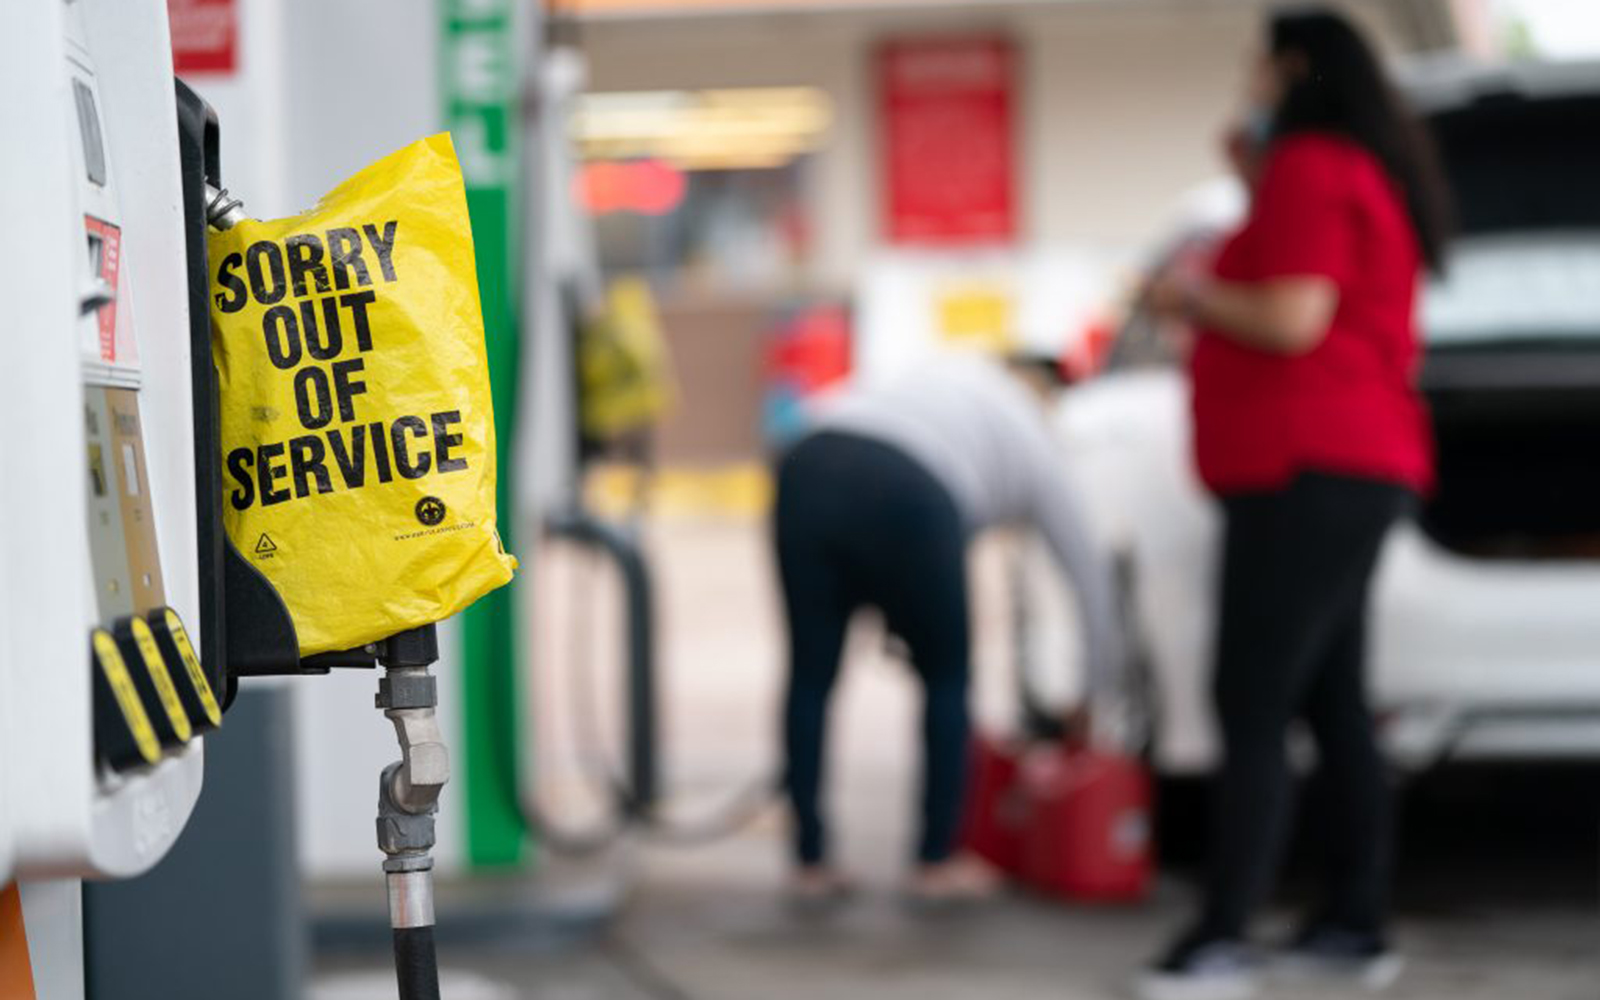 An out of service bag covers a pump handle at a gas station May 12, 2021 in Fayetteville, North Carolina. UConn's Stephen Fitzgerald says the ransomware attack that led to the gas shortage is a harbinger of things to come for multiple industries. (Photo by Sean Rayford/Getty Images)